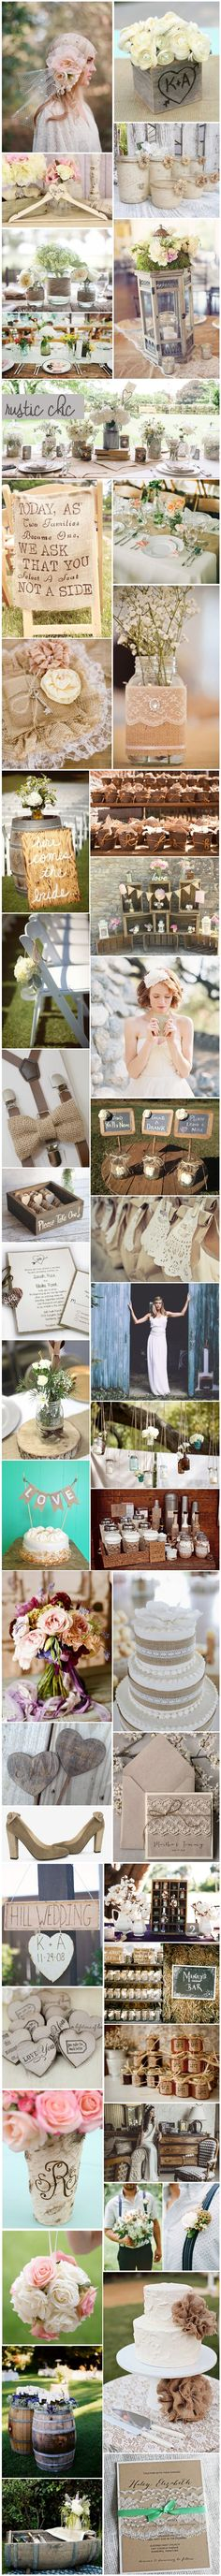 [Inspiration] Mariage rustique chic